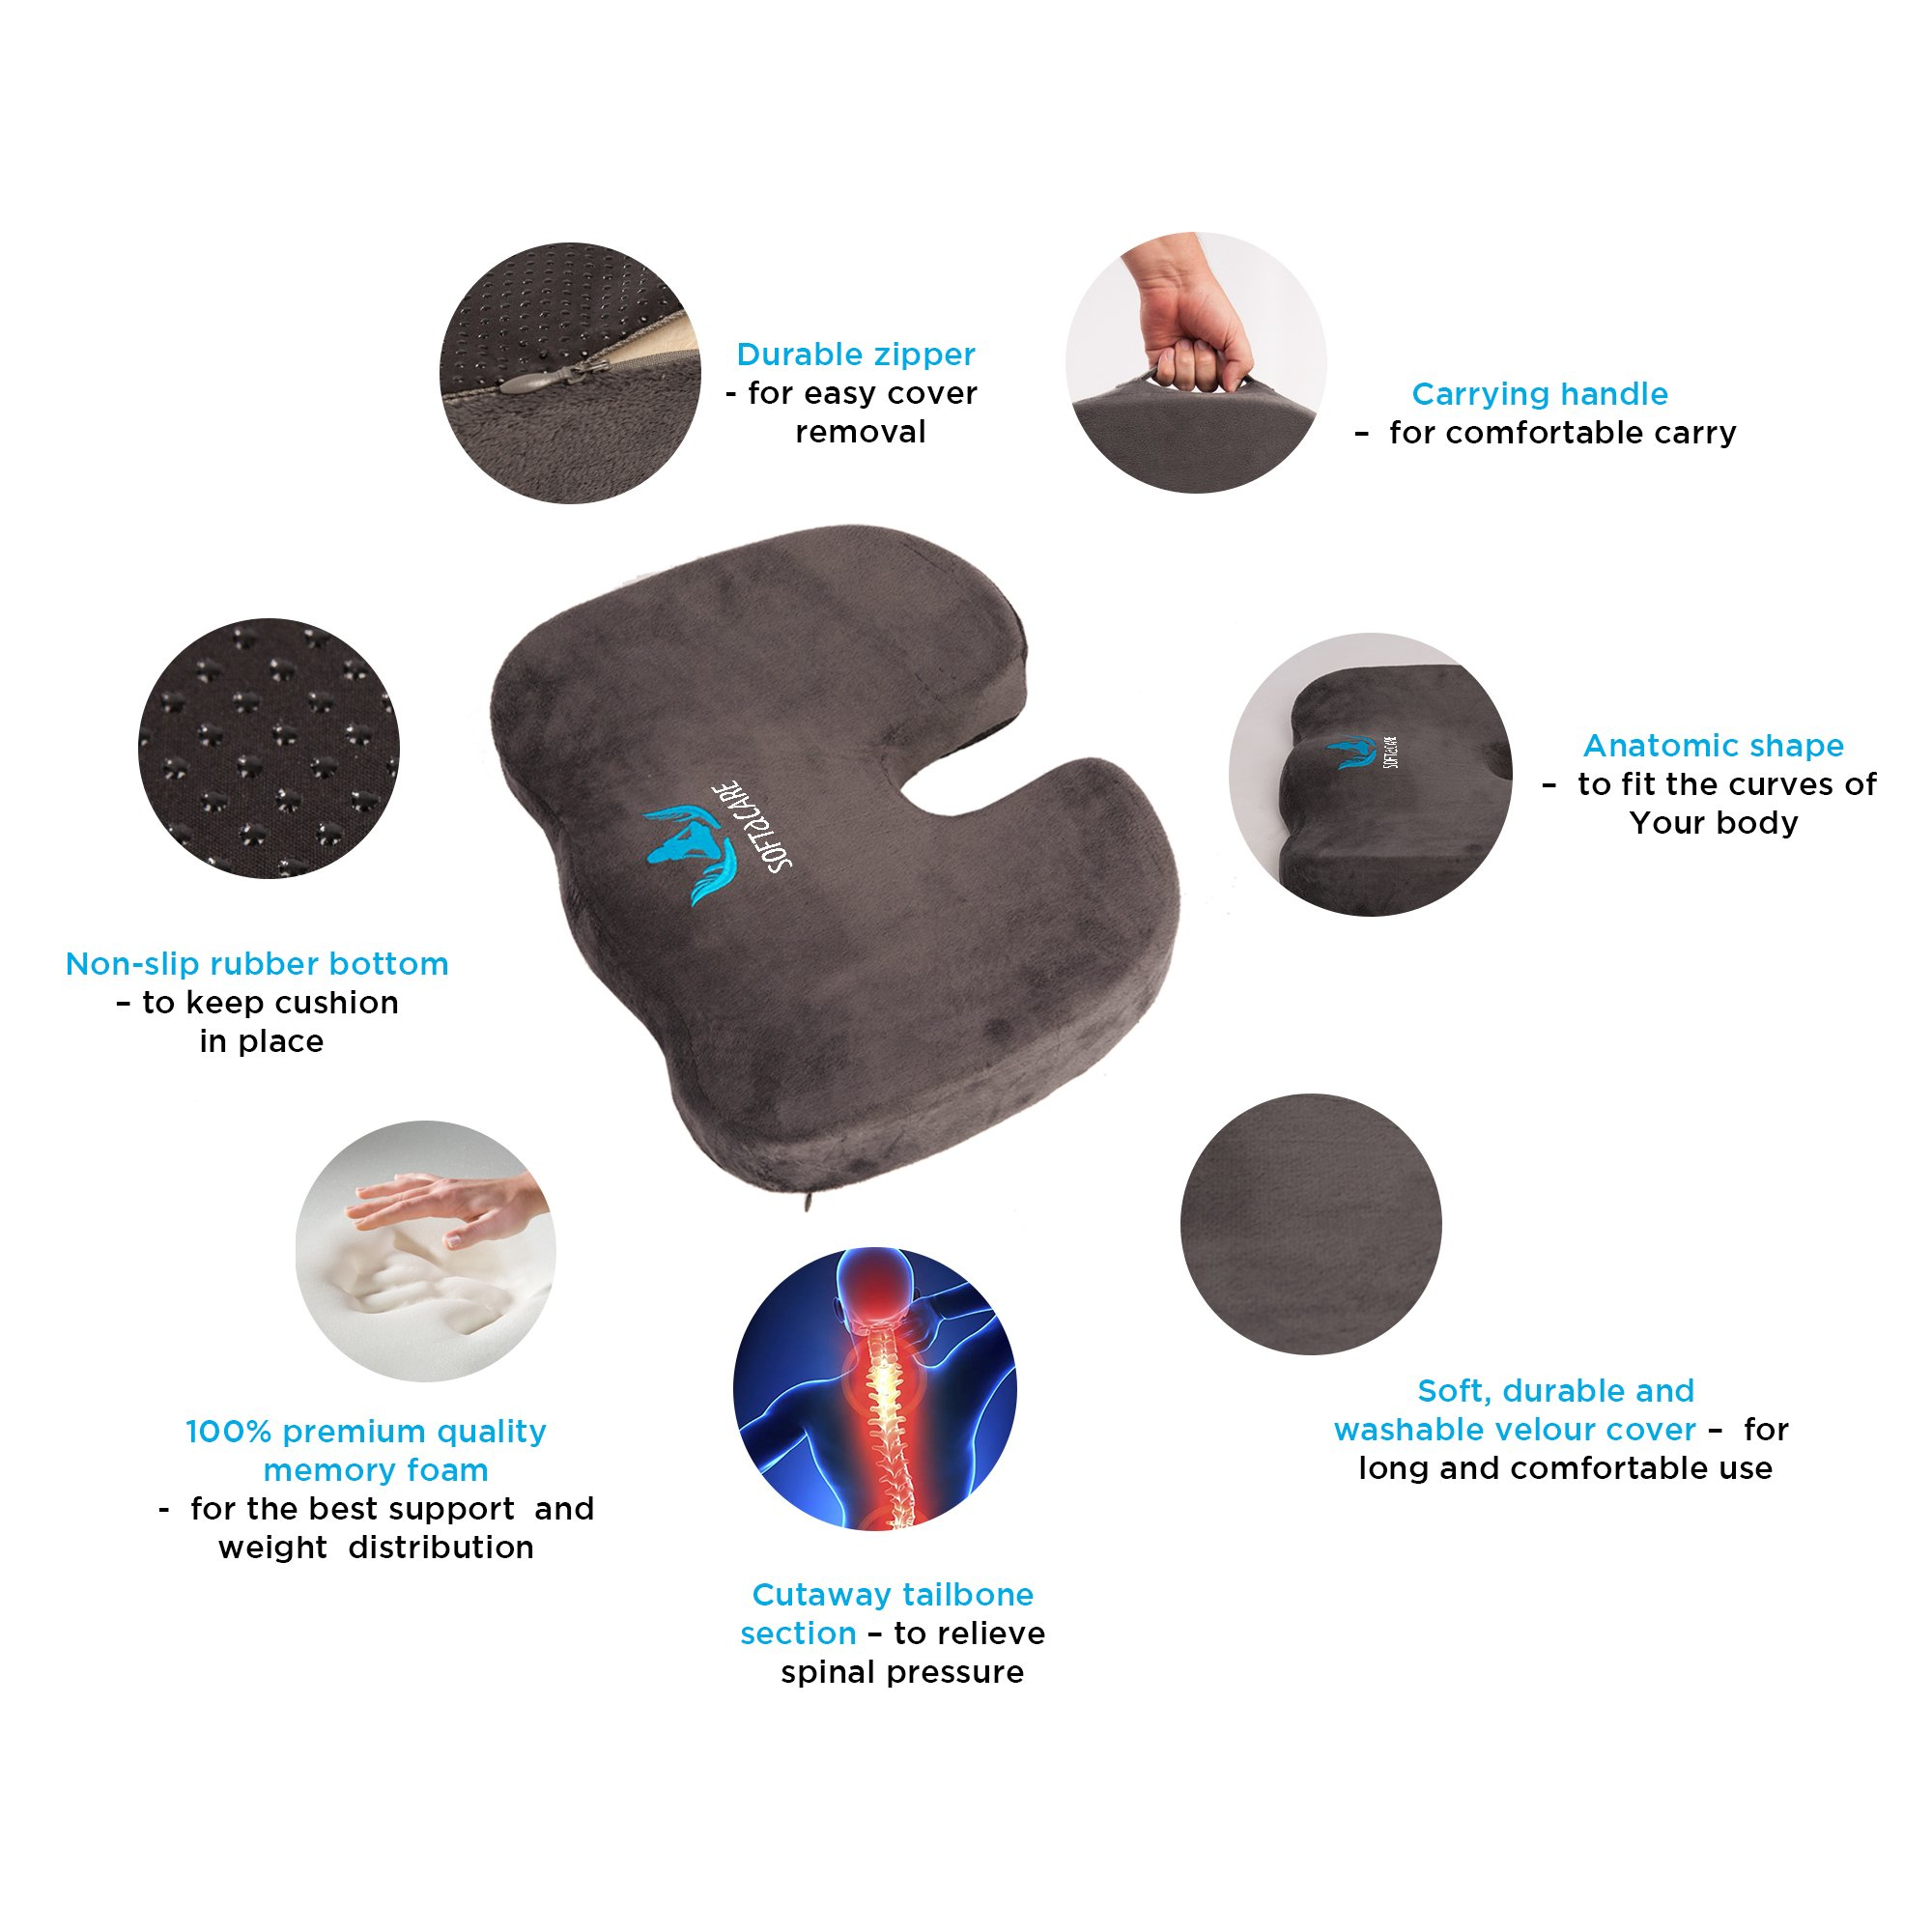 SOFTaCARE Seat Cushion Coccyx Orthopedic Memory Foam and Lumbar Support Pillow, Set of 2, Dark Gray (Grey, 2018 Design) by SOFTaCARE (Image #3)